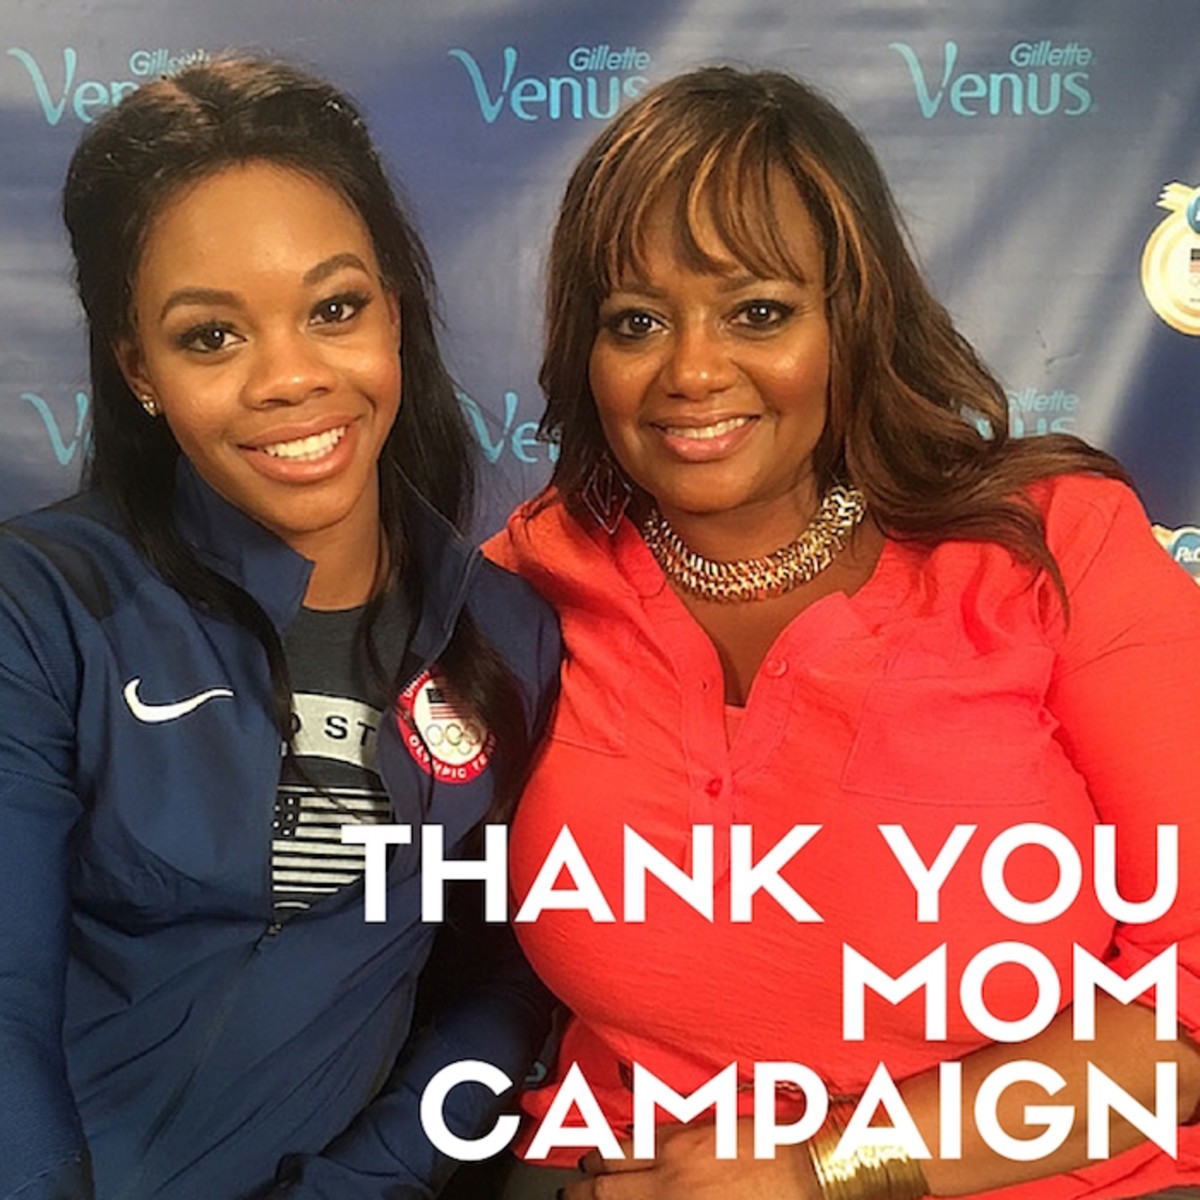 thank you mom campaign